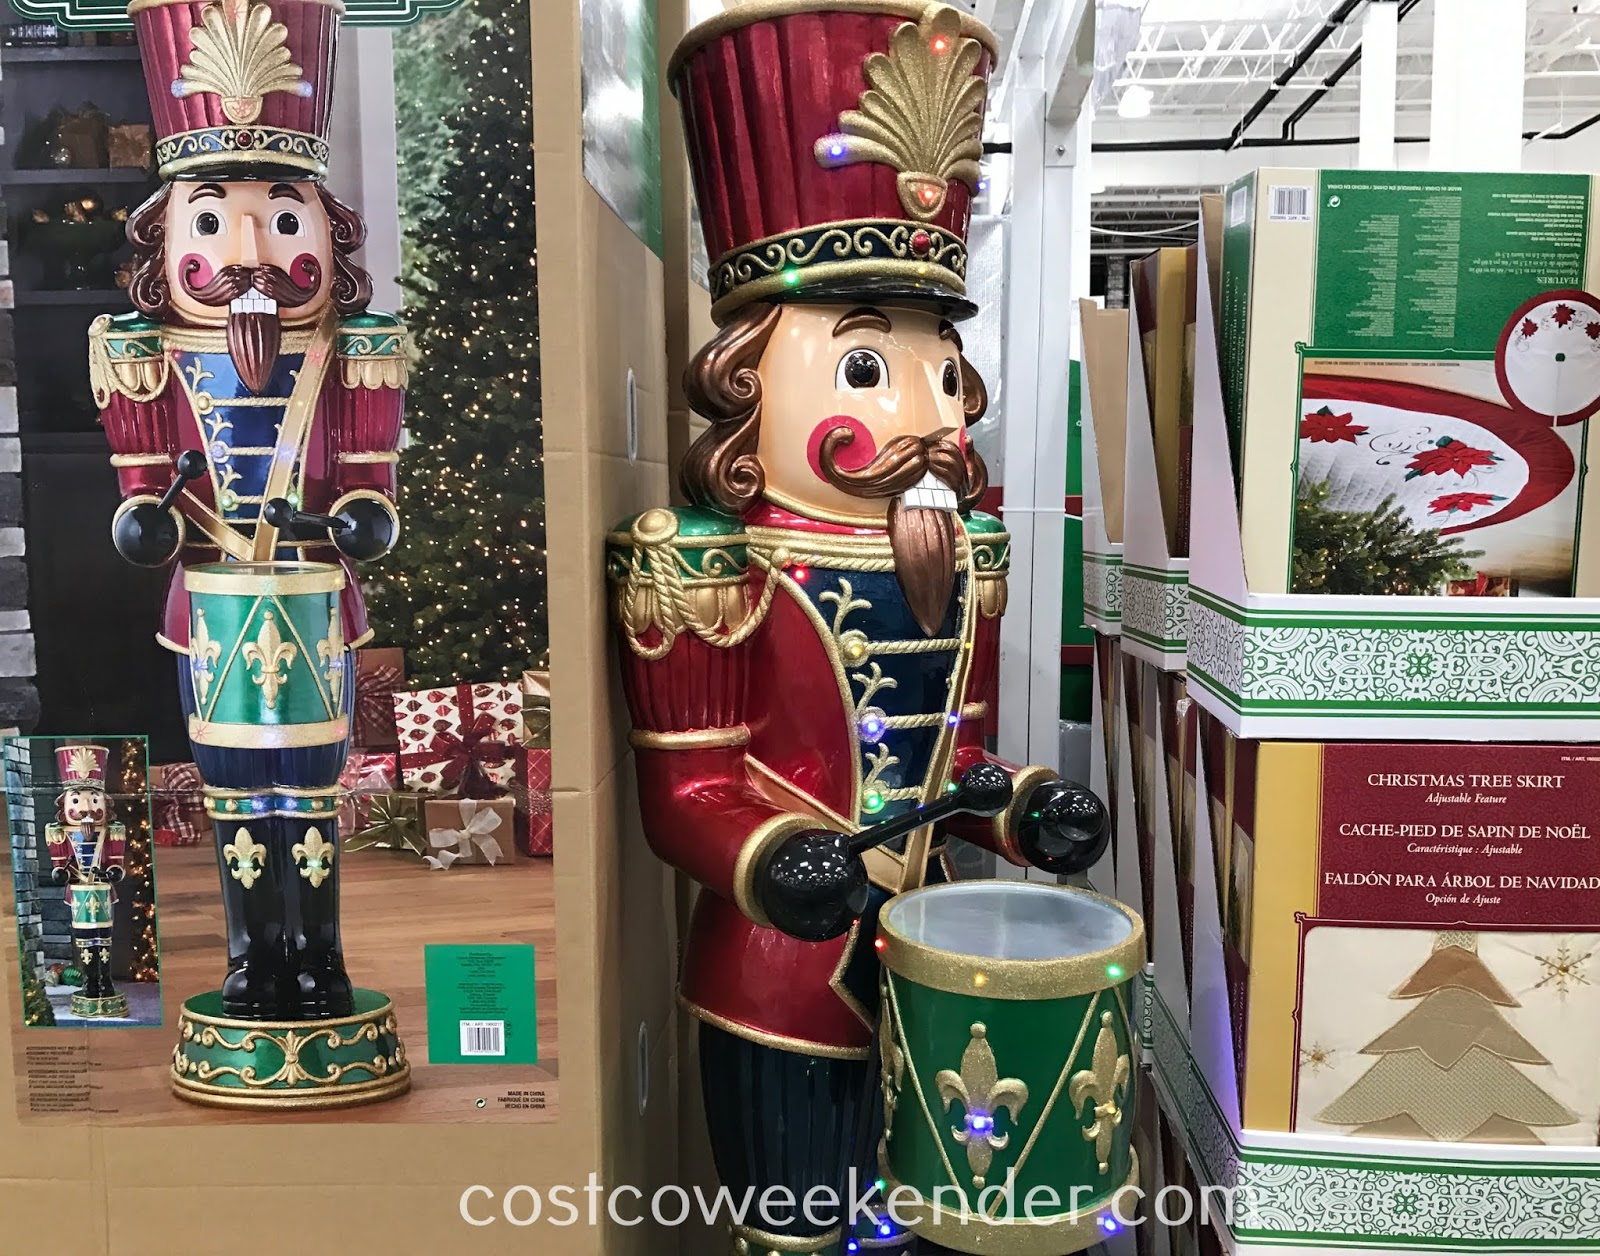 Decorate your home this Christmas with the 6ft Nutcracker with Music and LED Lights